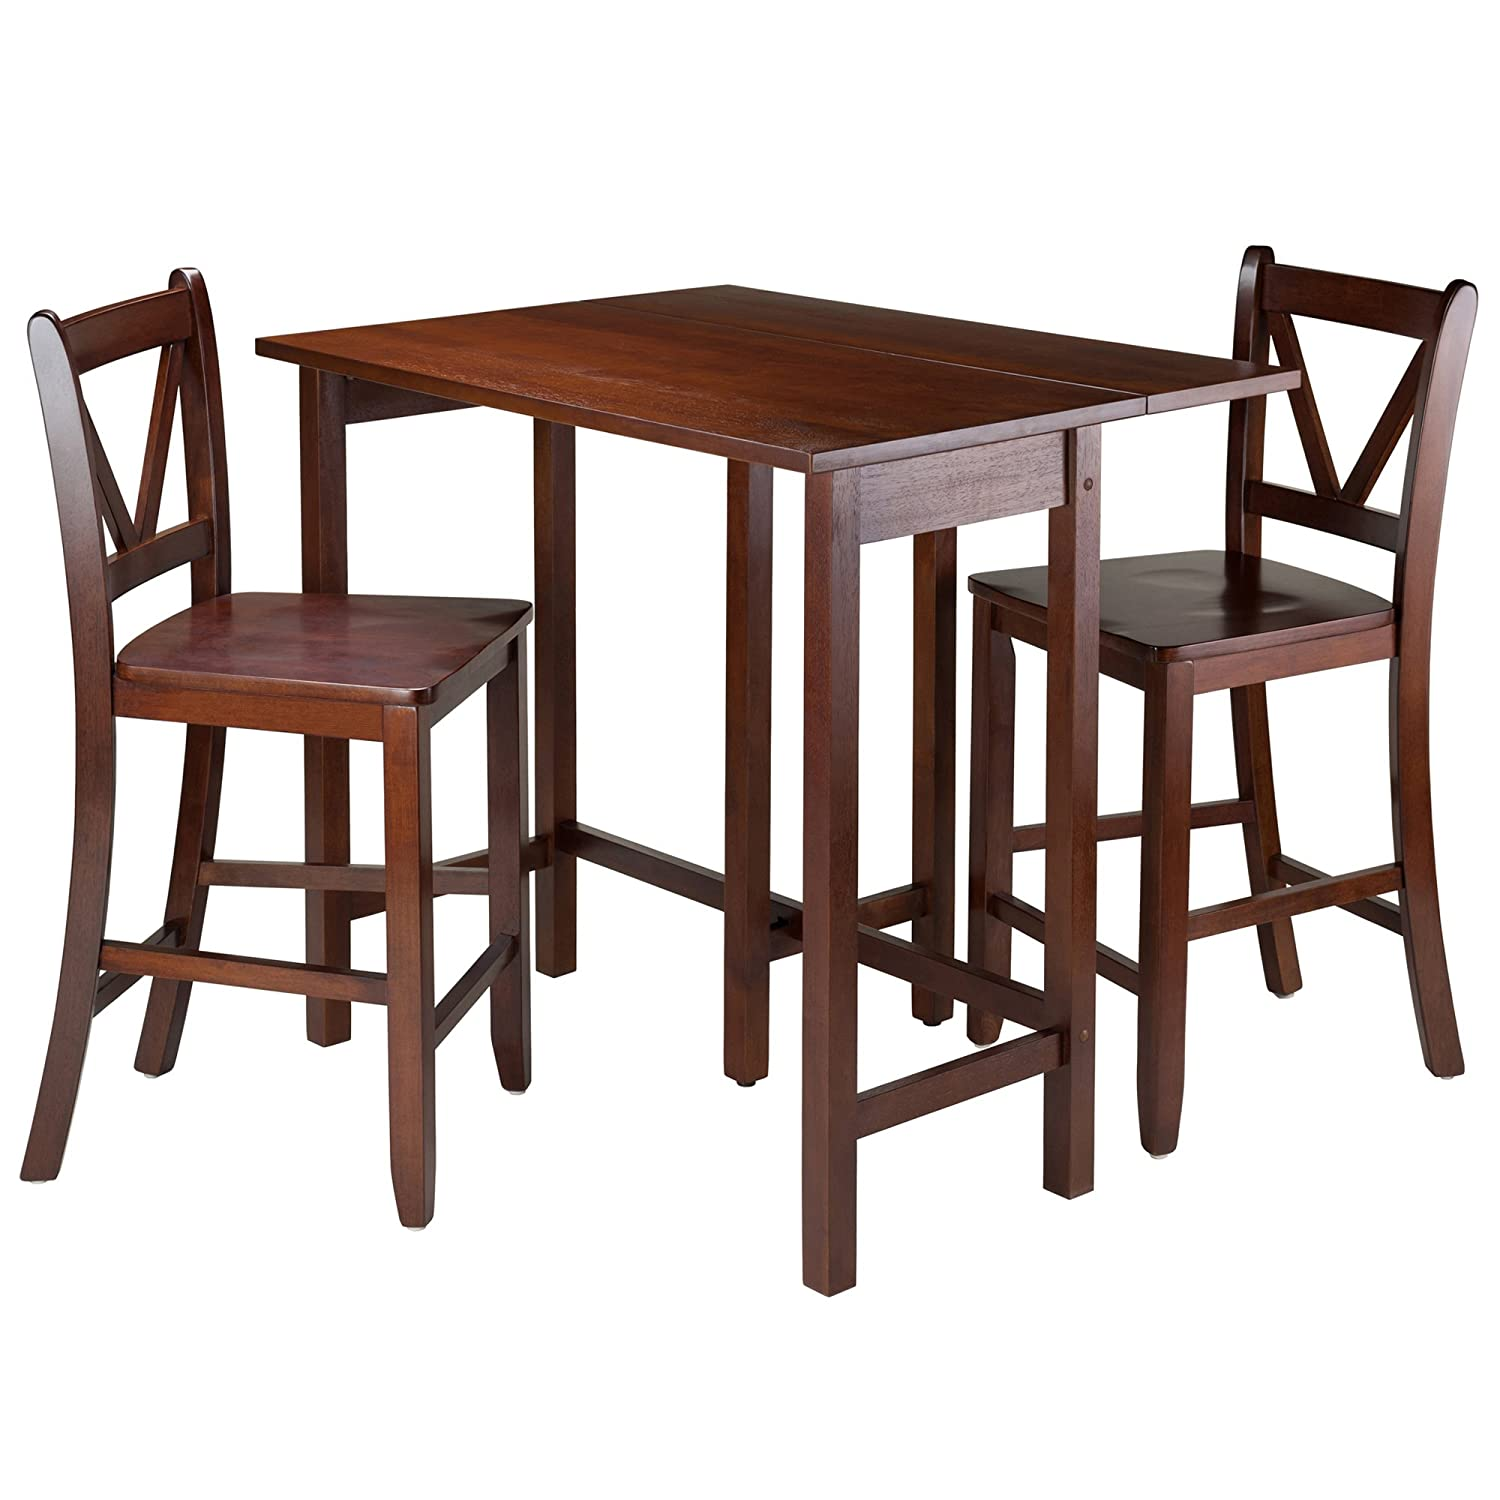 Winsome 94355 Lynnwood Collection 3 Piece Drop Leaf Table with 2 Counter V-Back Stools Brown